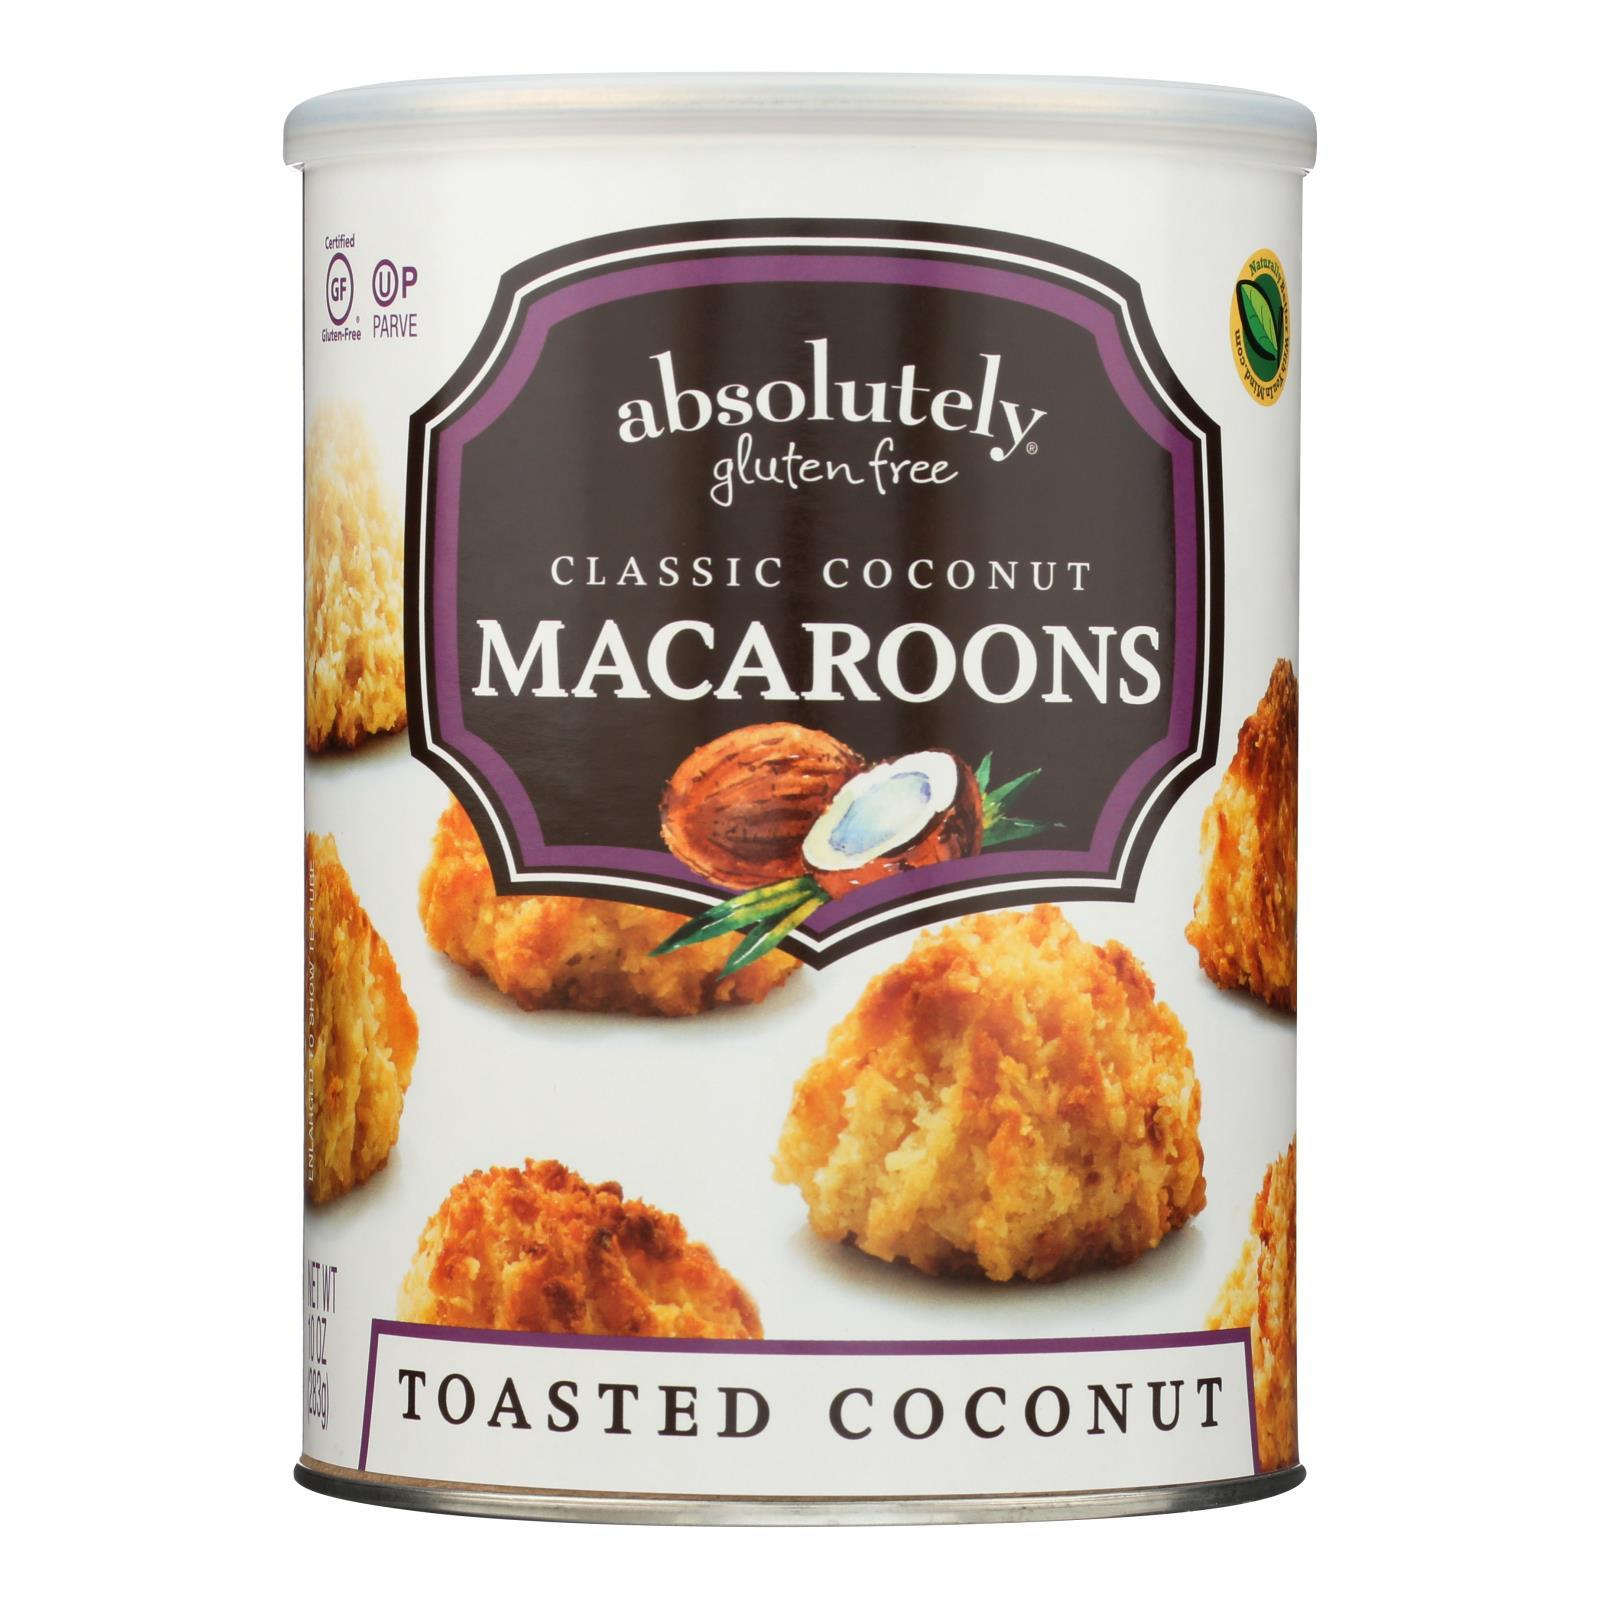 Absolutely Gluten Free Macaroons - Coconut - Classic - Case Of 6 - 10 Oz - BeeGreen